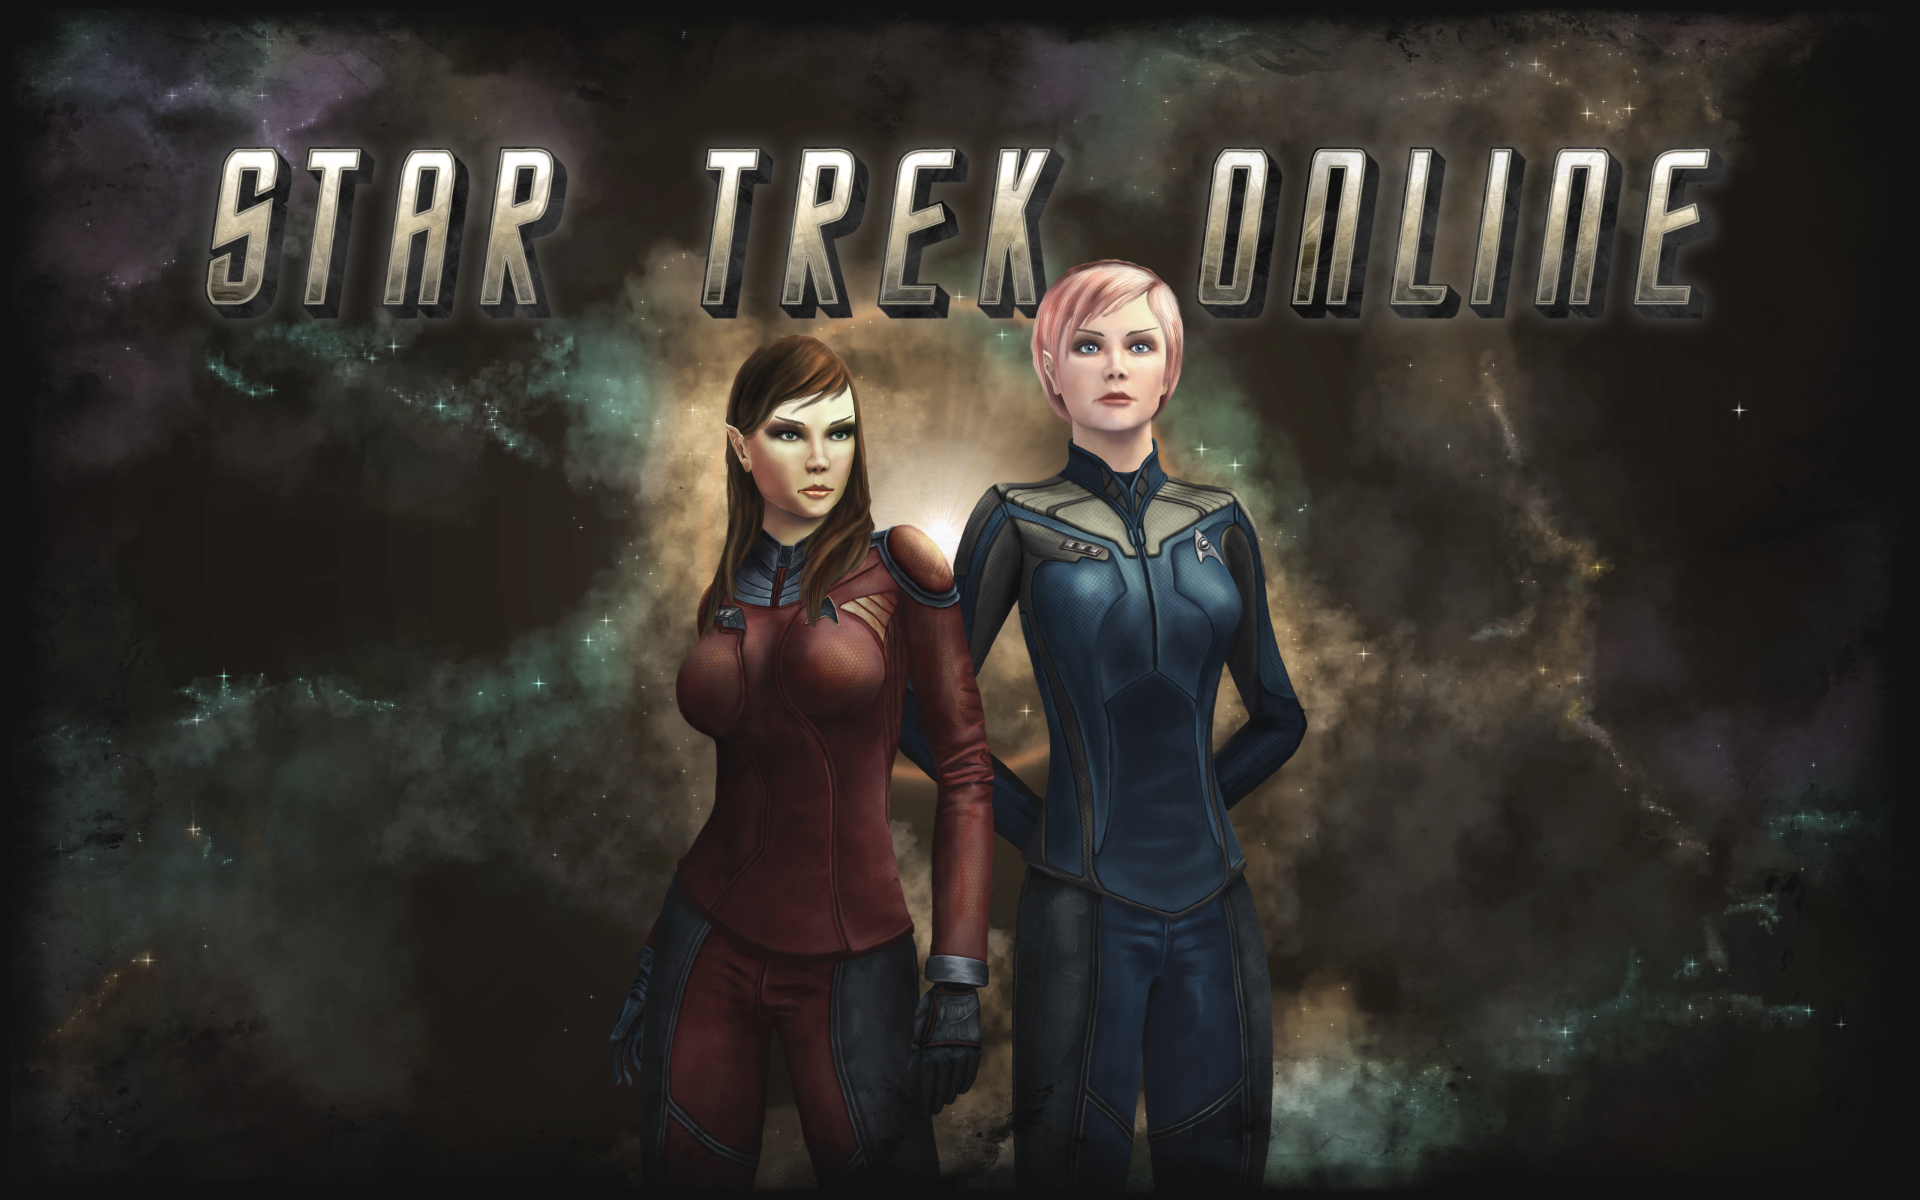 Star Trek Online Wallpaper by xGreatCthulhux 1920x1200